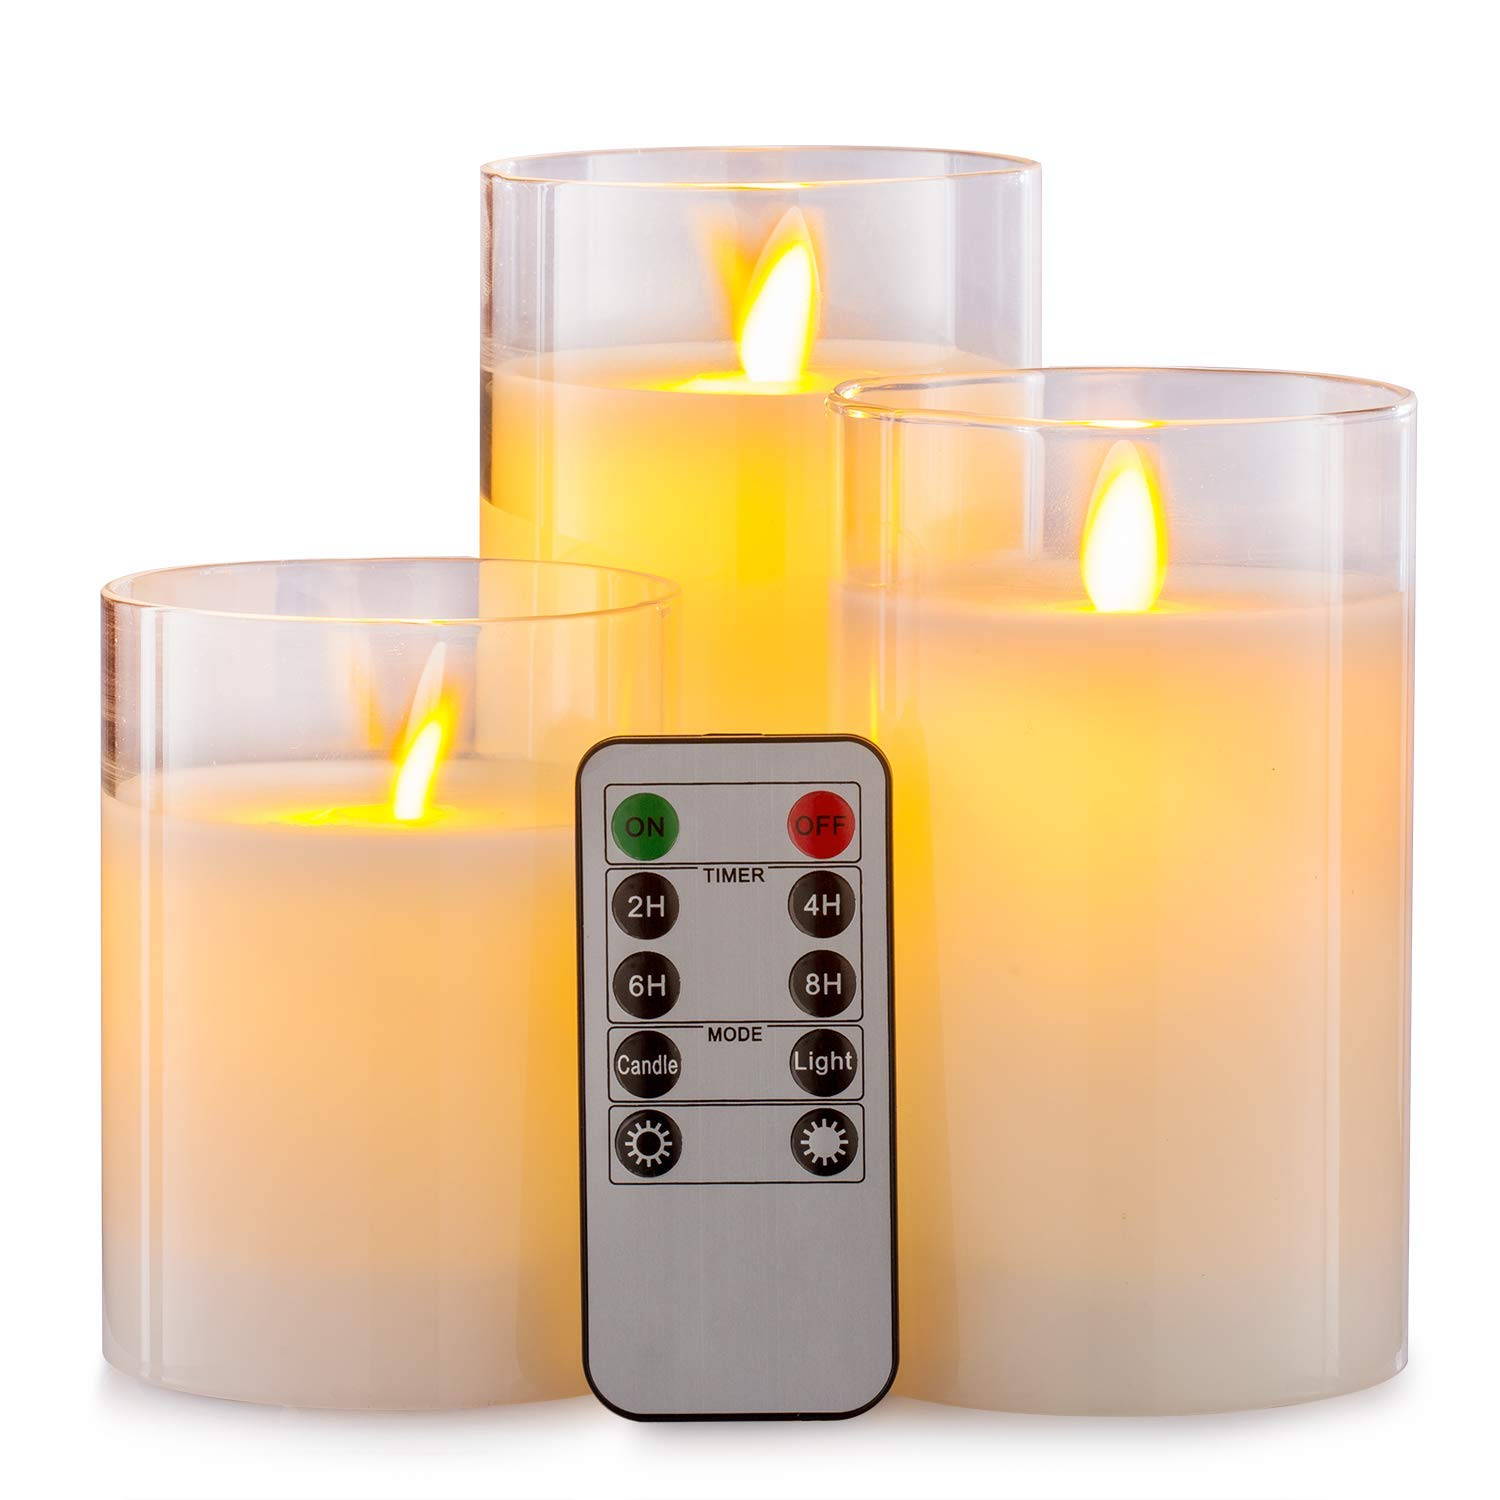 Aku Tonpa Flameless Candles Battery Operated Pillar Real Wax Flickering Moving Wick LED Glass Candle Sets with Remote Control Cycling 24 Hours Timer, 4'' 5'' 6'' Pack of 3 by Aku Tonpa